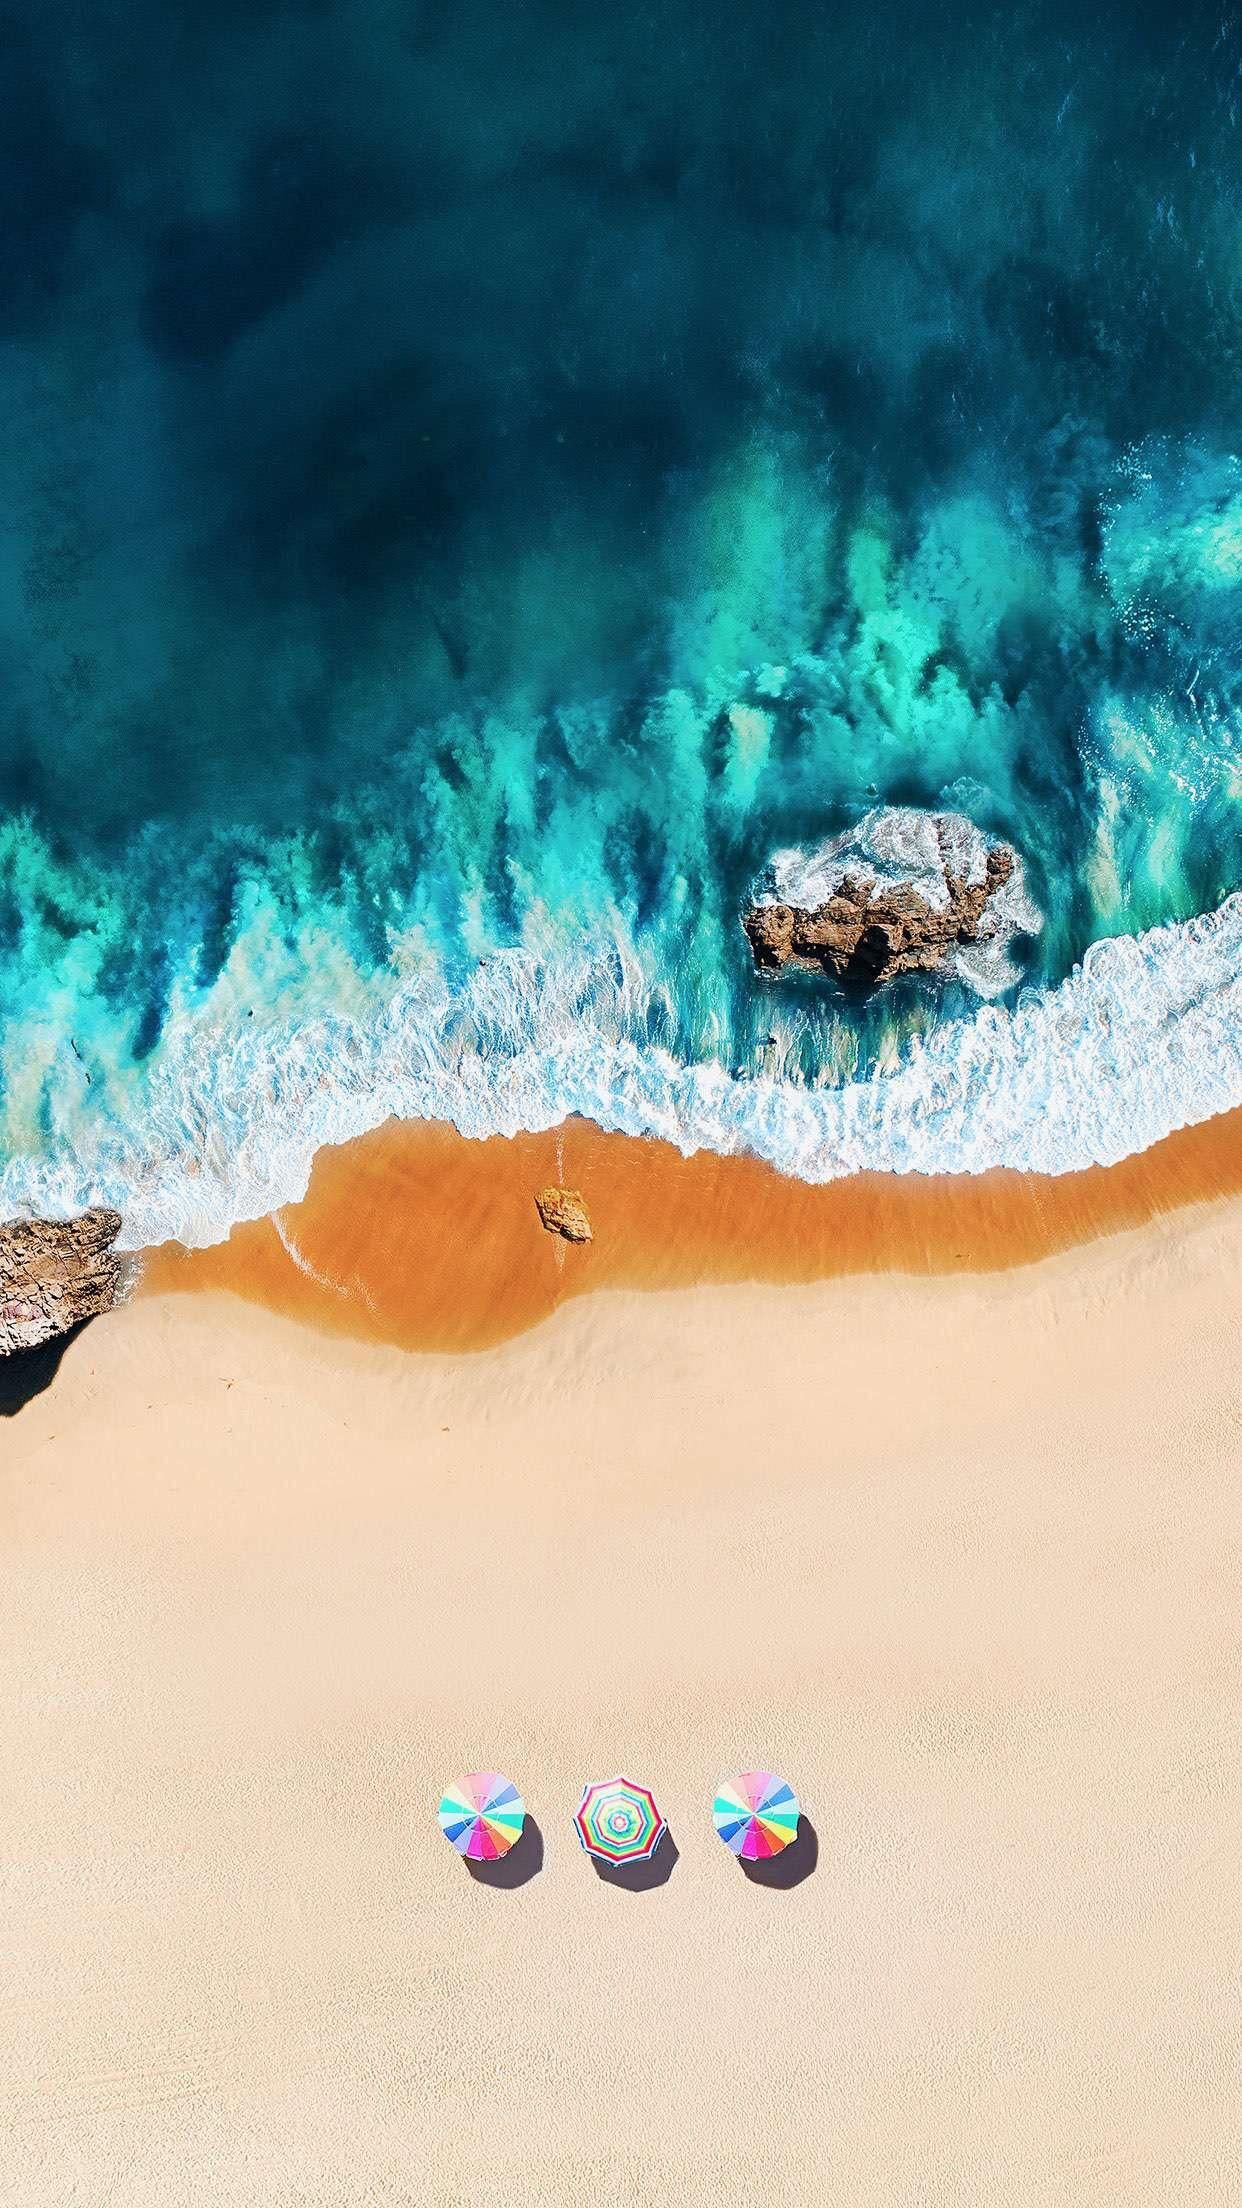 Beach Wallpaper. Enjoy Beach wallpaper, Aerial